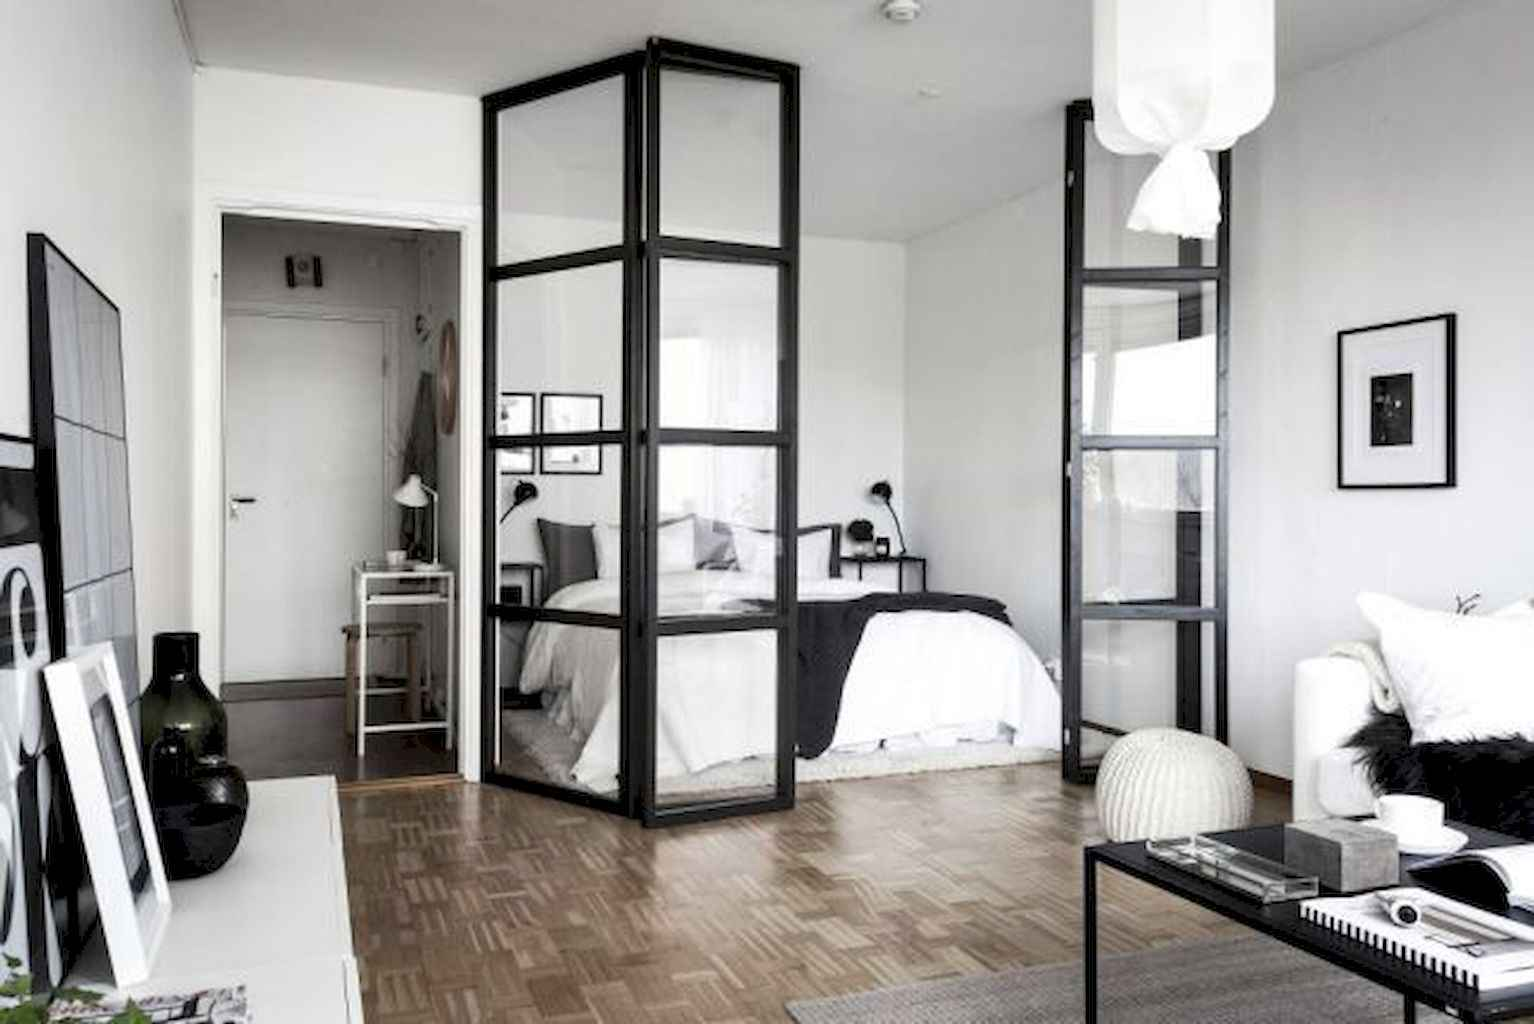 Cool small apartment decorating ideas on a budget (59)